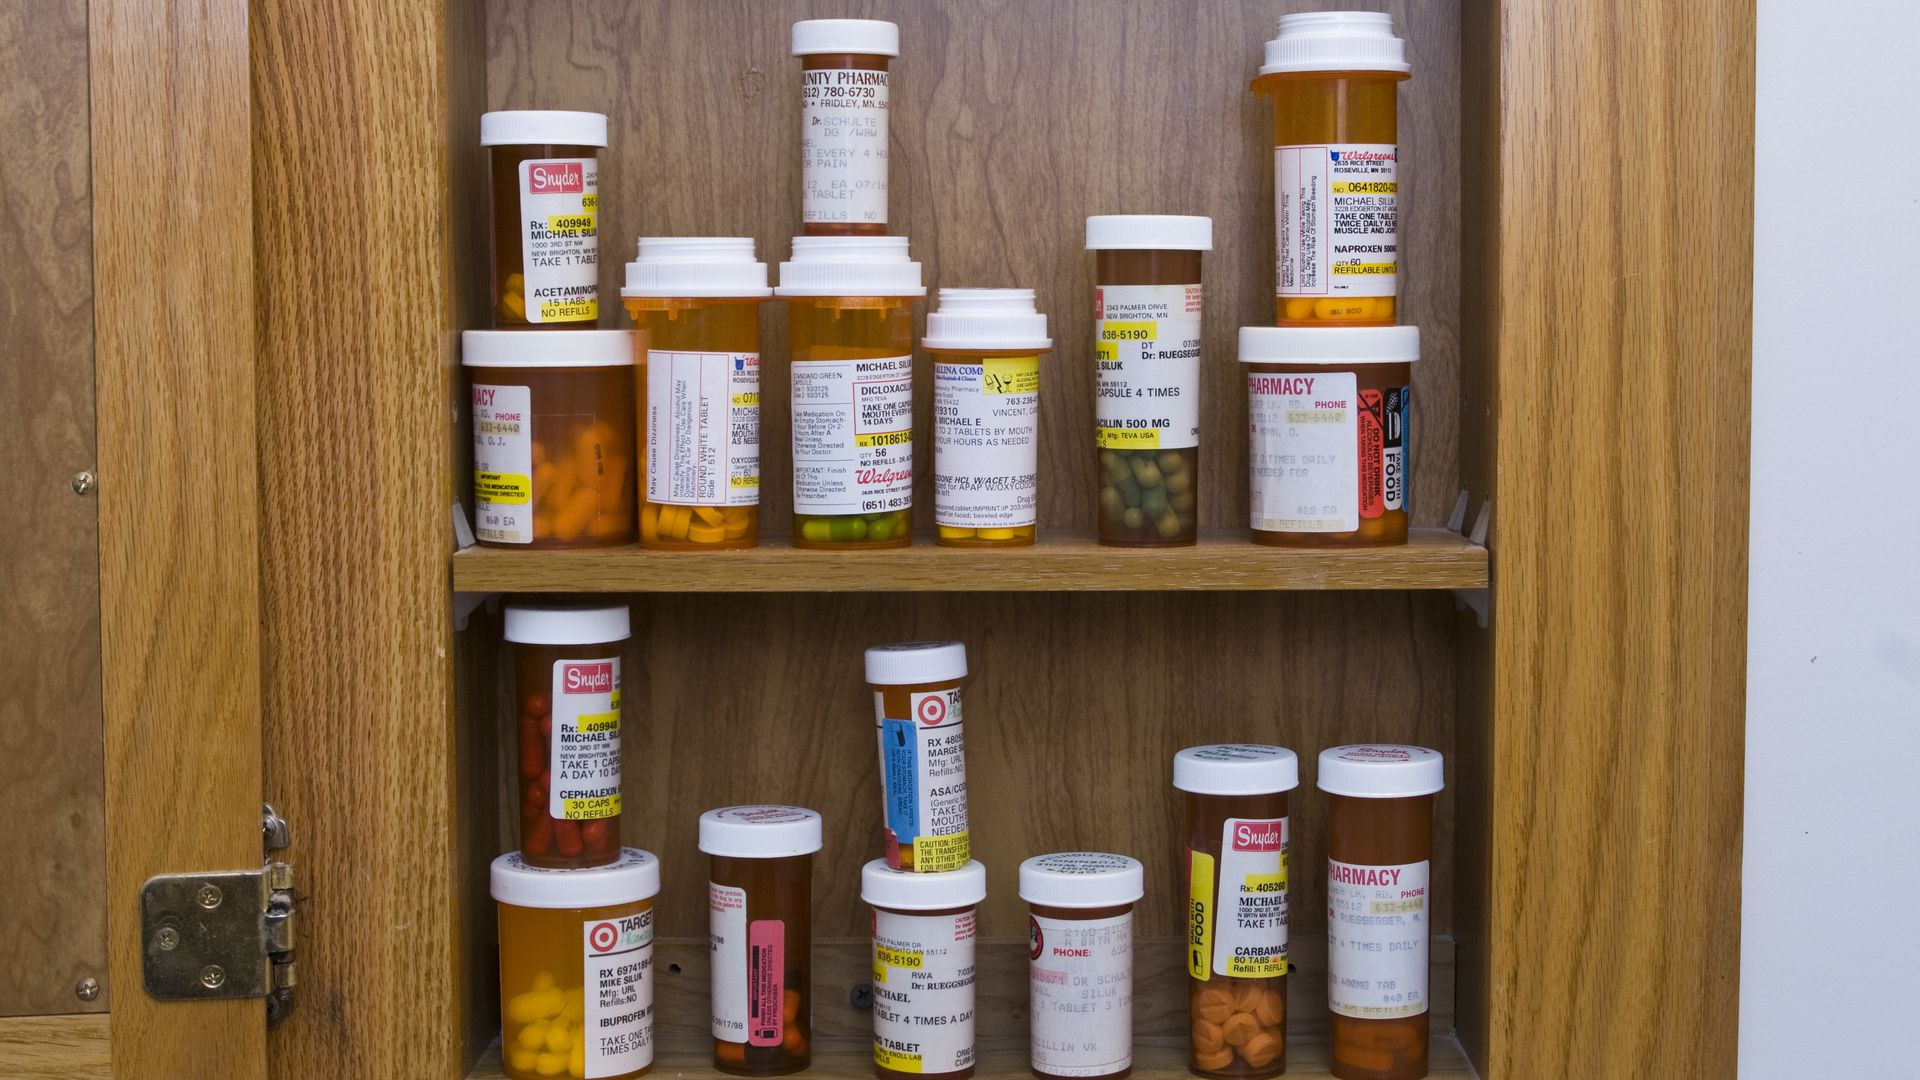 A medicine cabinet full of prescription bottles.